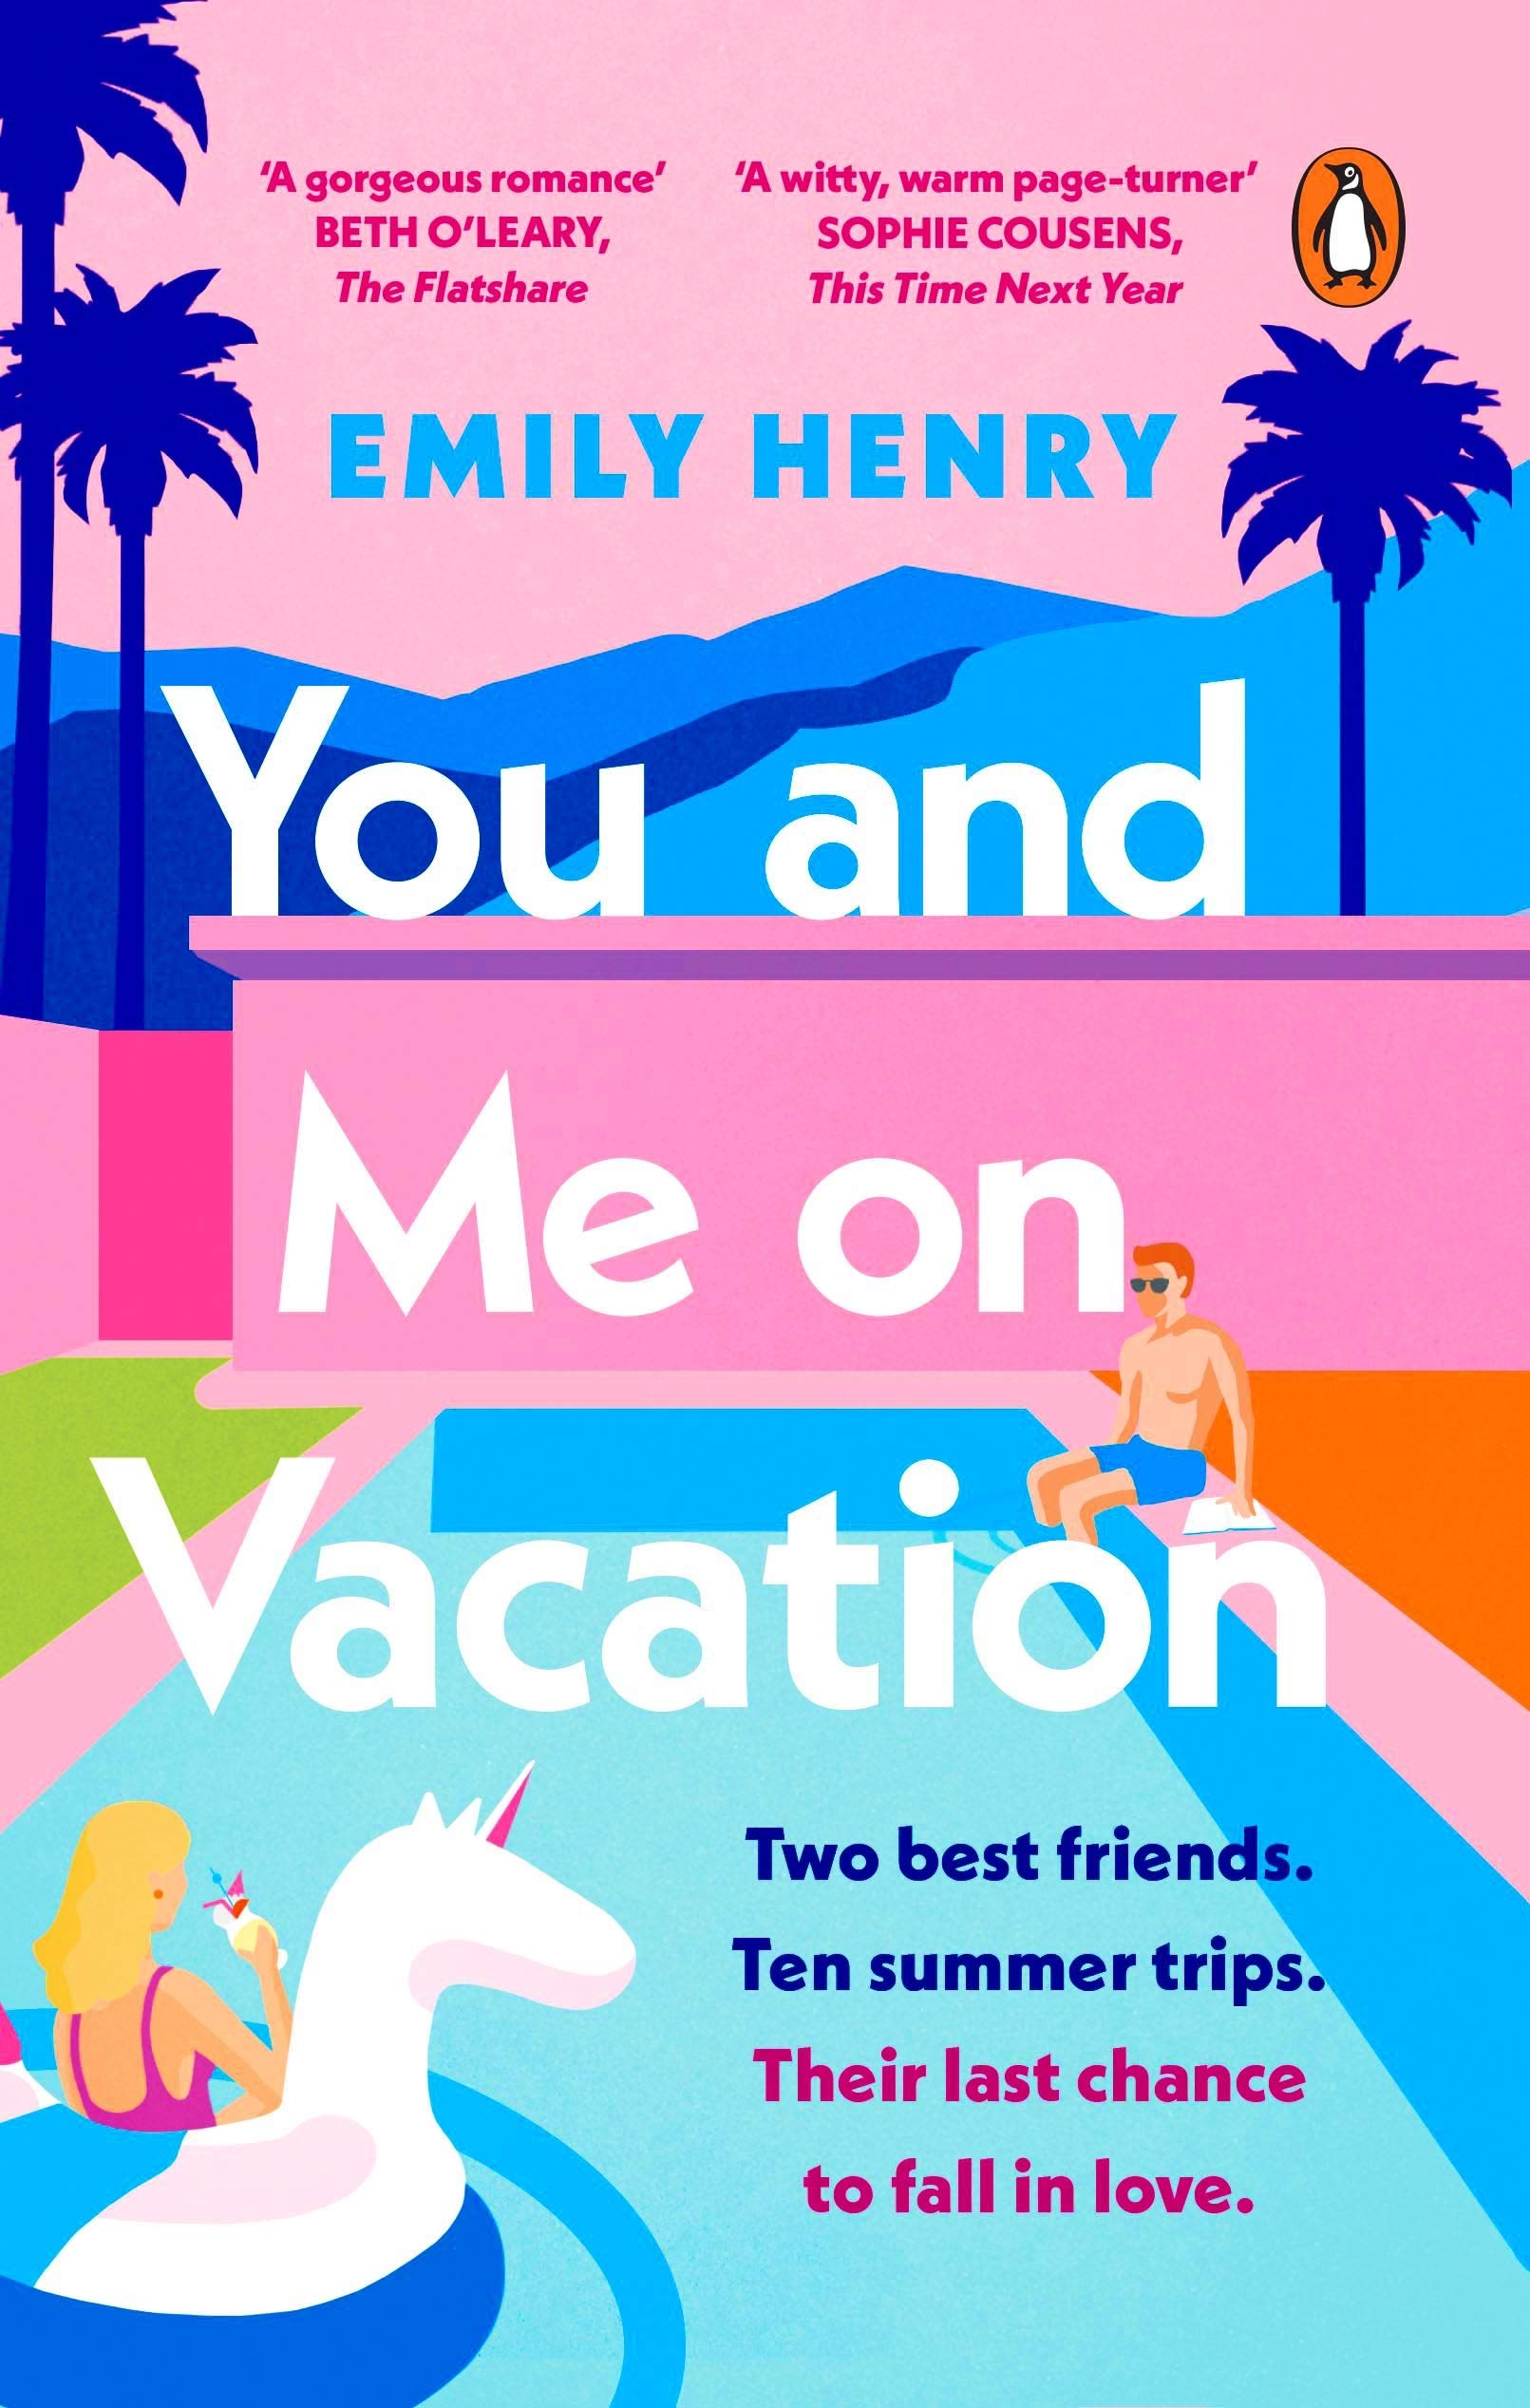 You and Me on Vacation: Amazon.co.uk: Henry, Emily: 9780241992234: Books